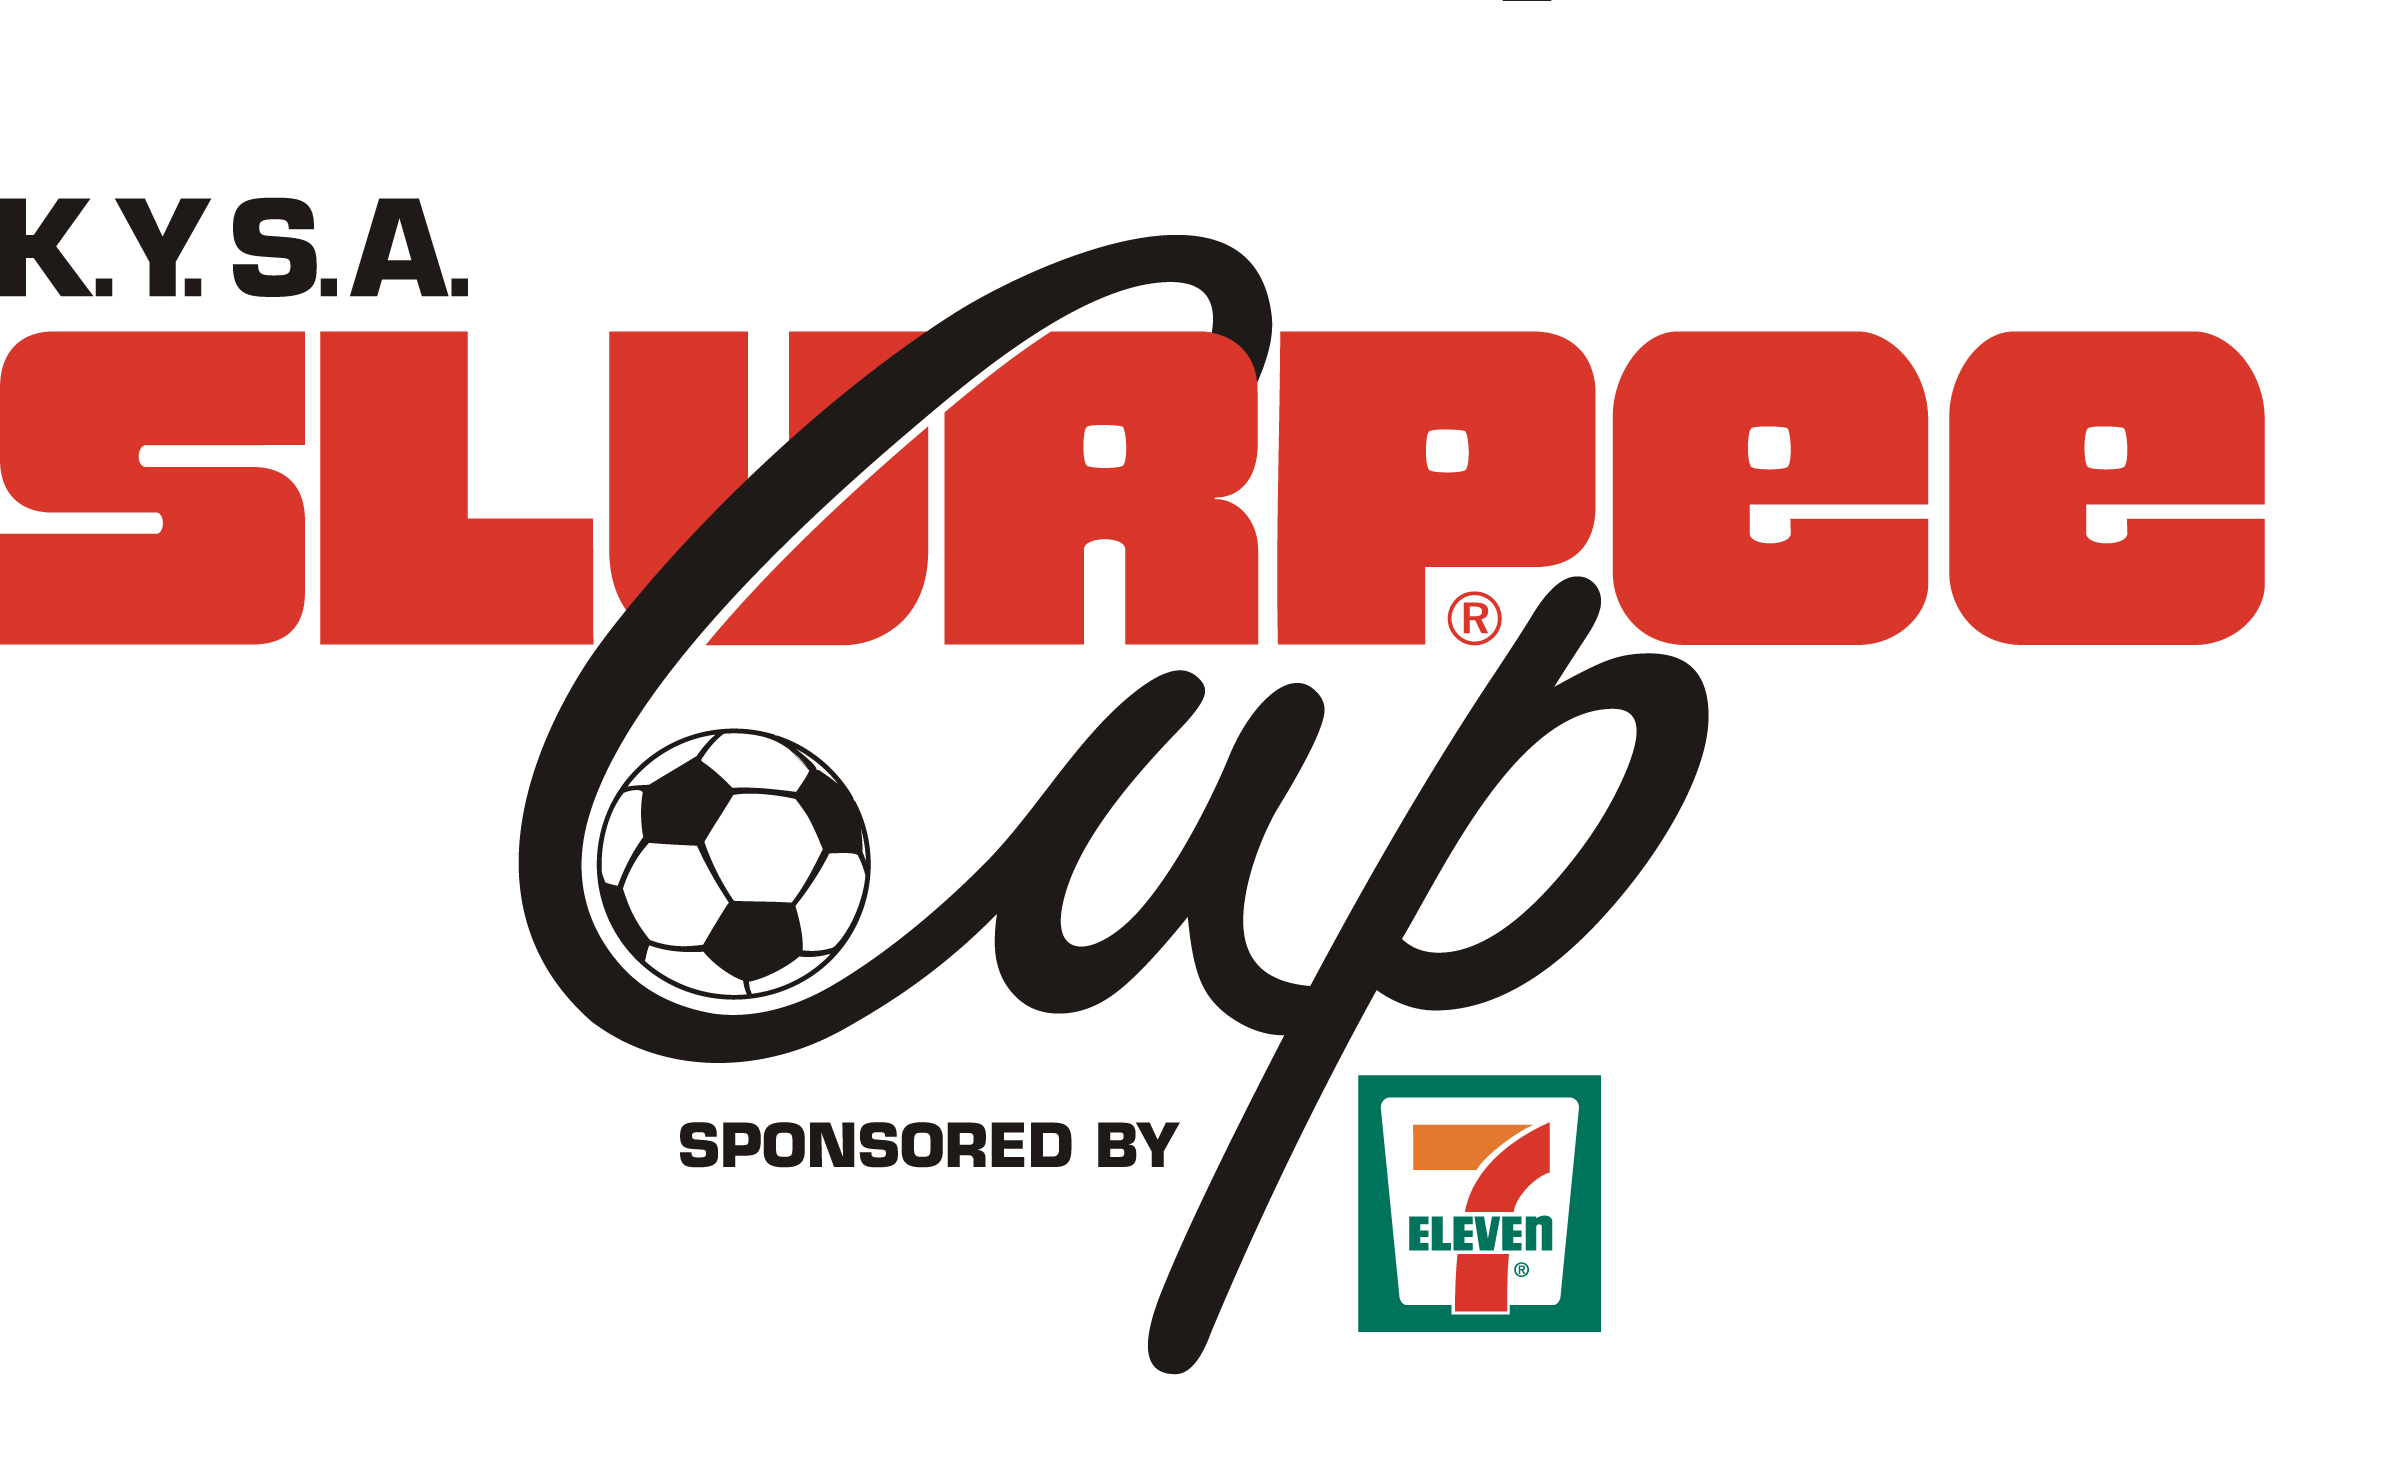 40th ANNIVERSARY KYSA SLURPEE CUP – MAY 19-21, 2018